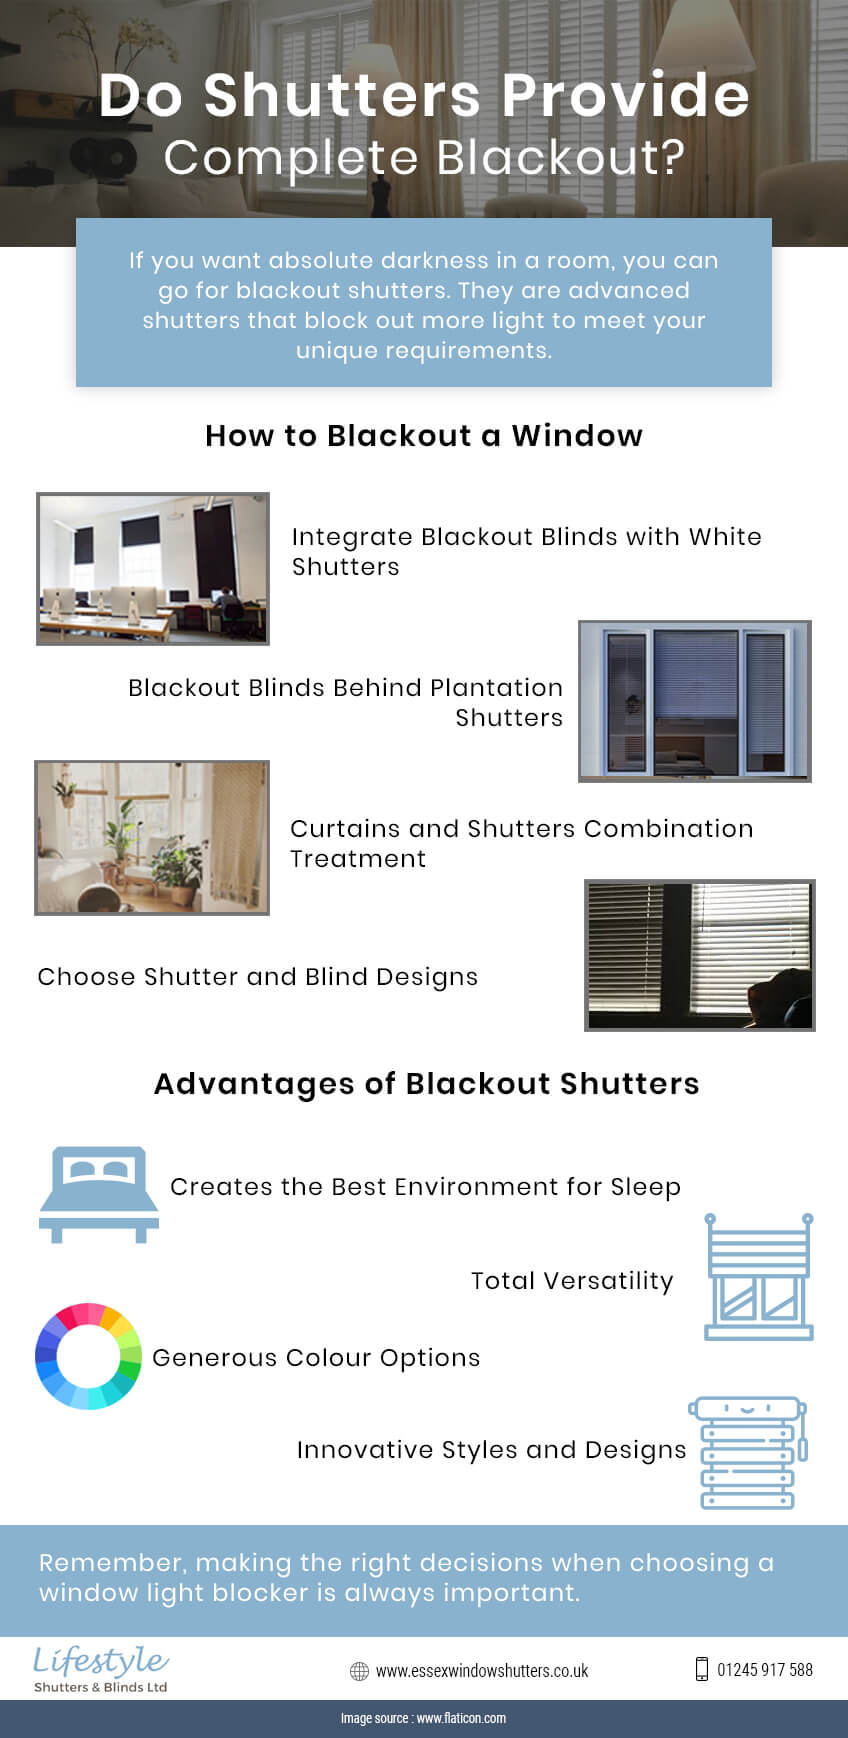 Do Shutters Provide Complete Blackout In A Room